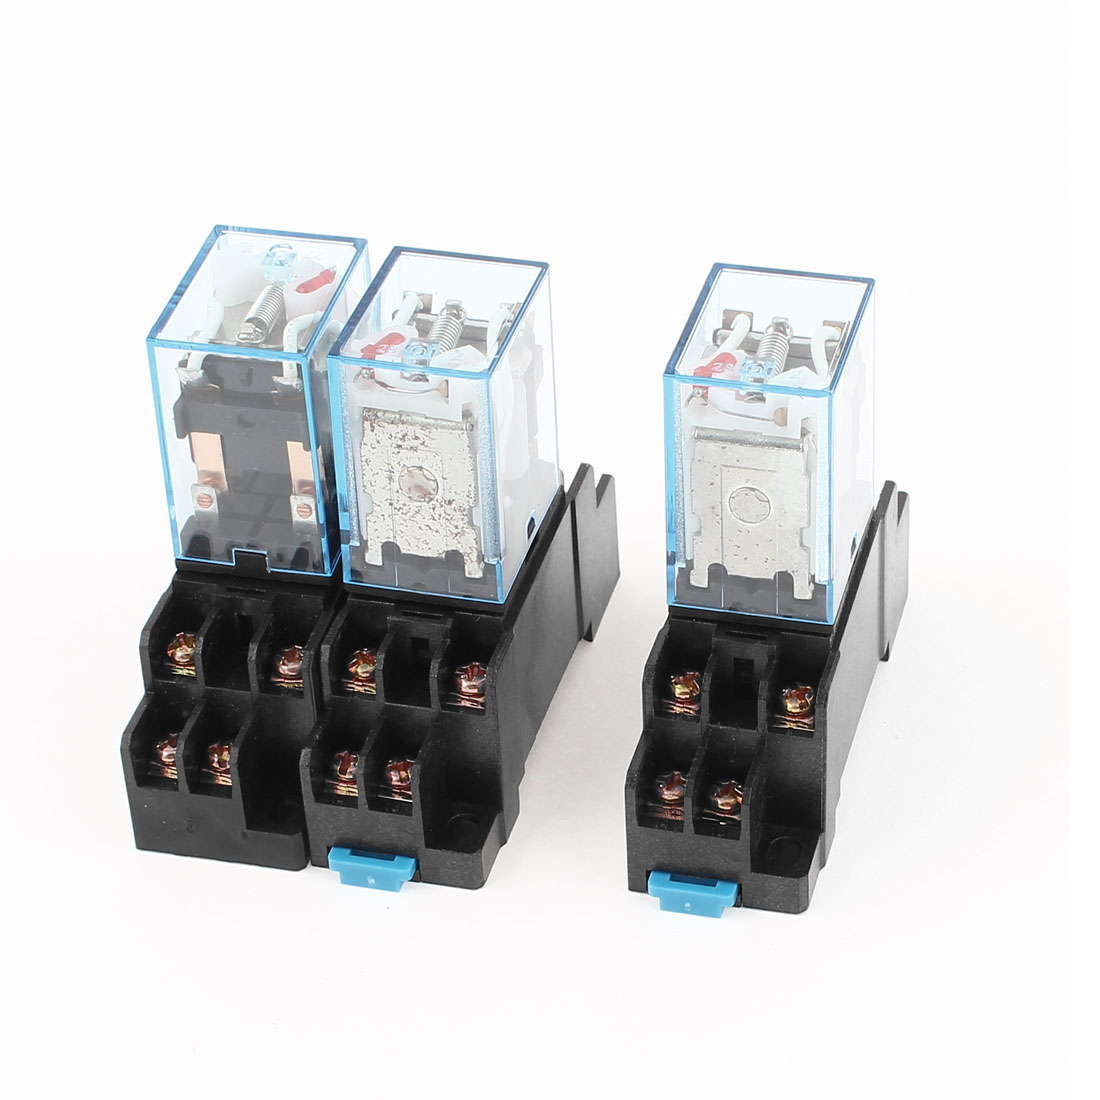 3 Pcs AC 220V/240V 5A Coil Red Indicator Light 35mm DIN Rail DPDT 8Pins Electromagnetic General Purpose Power Relay + Socket Base